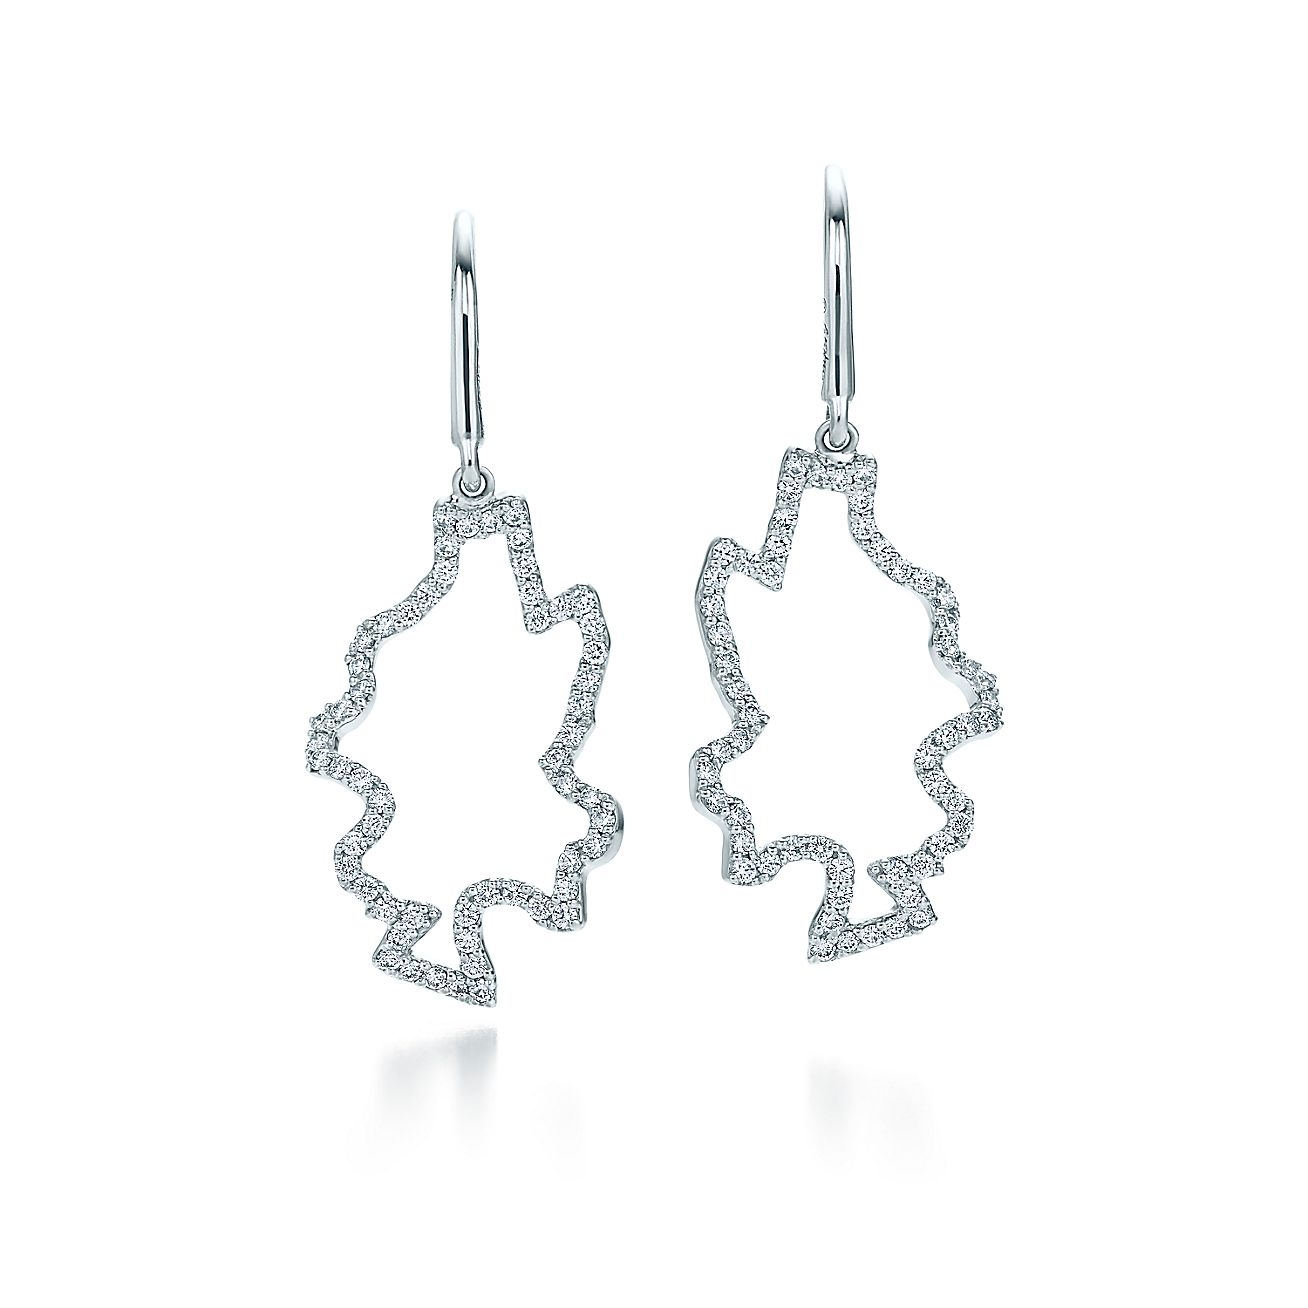 Frank Gehry Leaves Earrings In 18k White Gold With